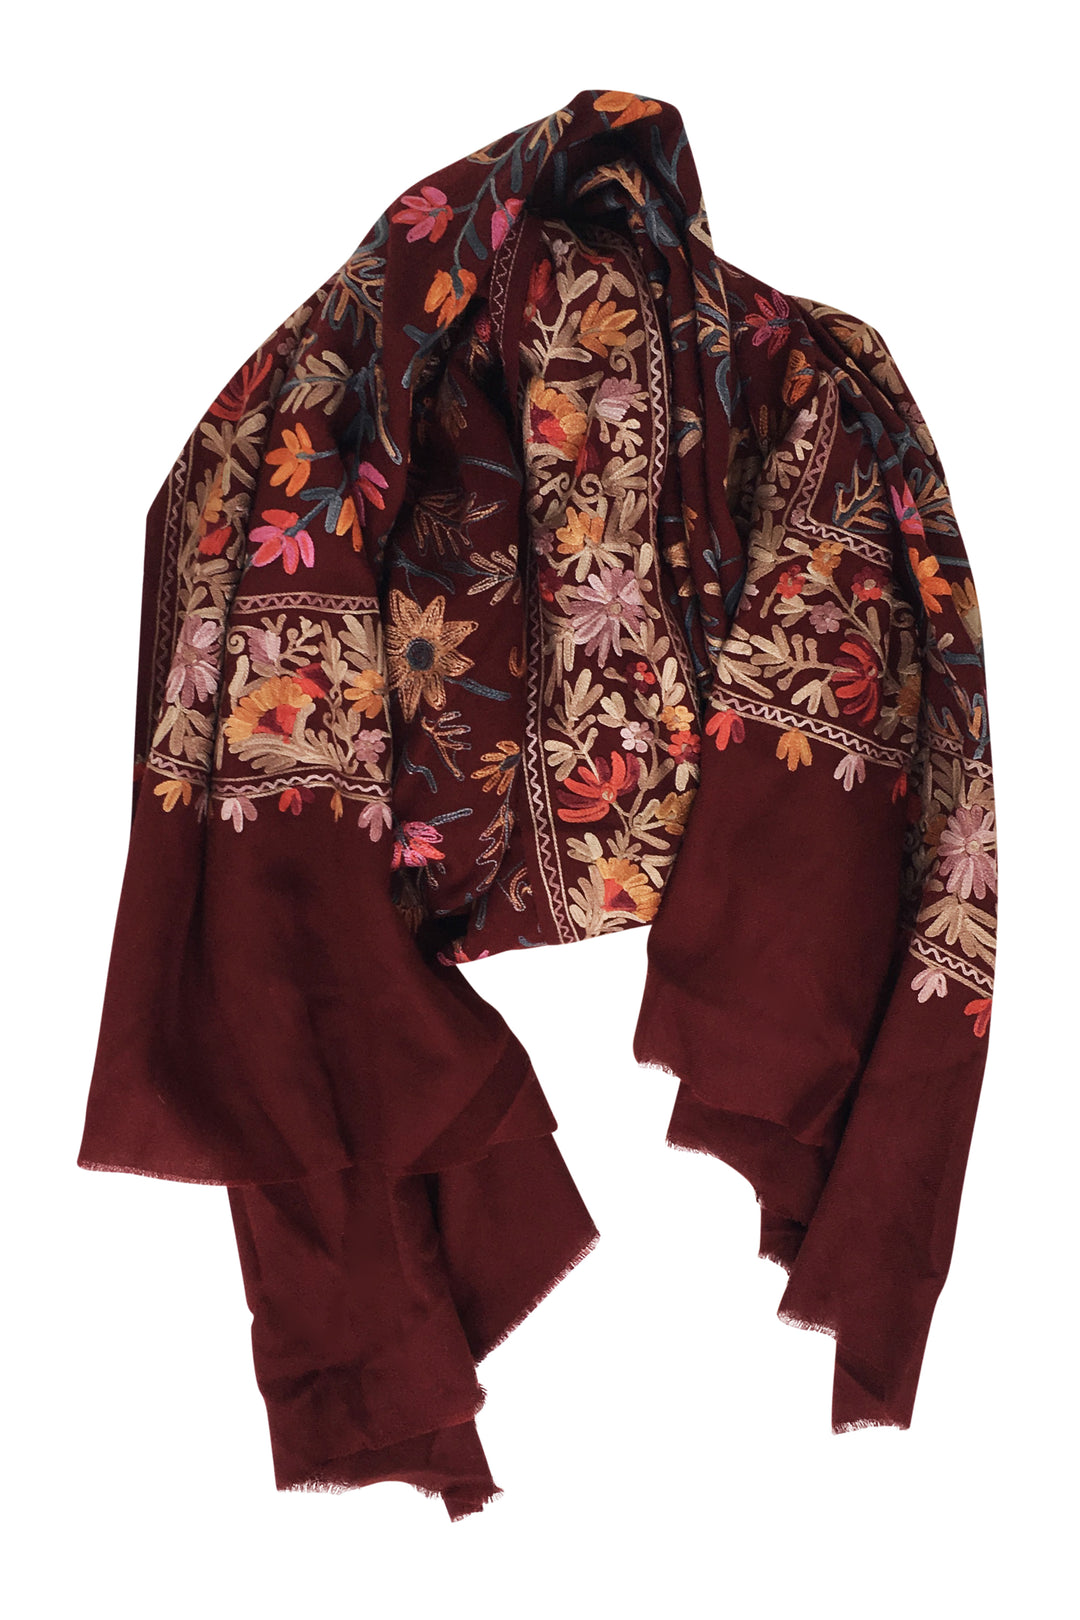 Shalimar embroidered wool shawl